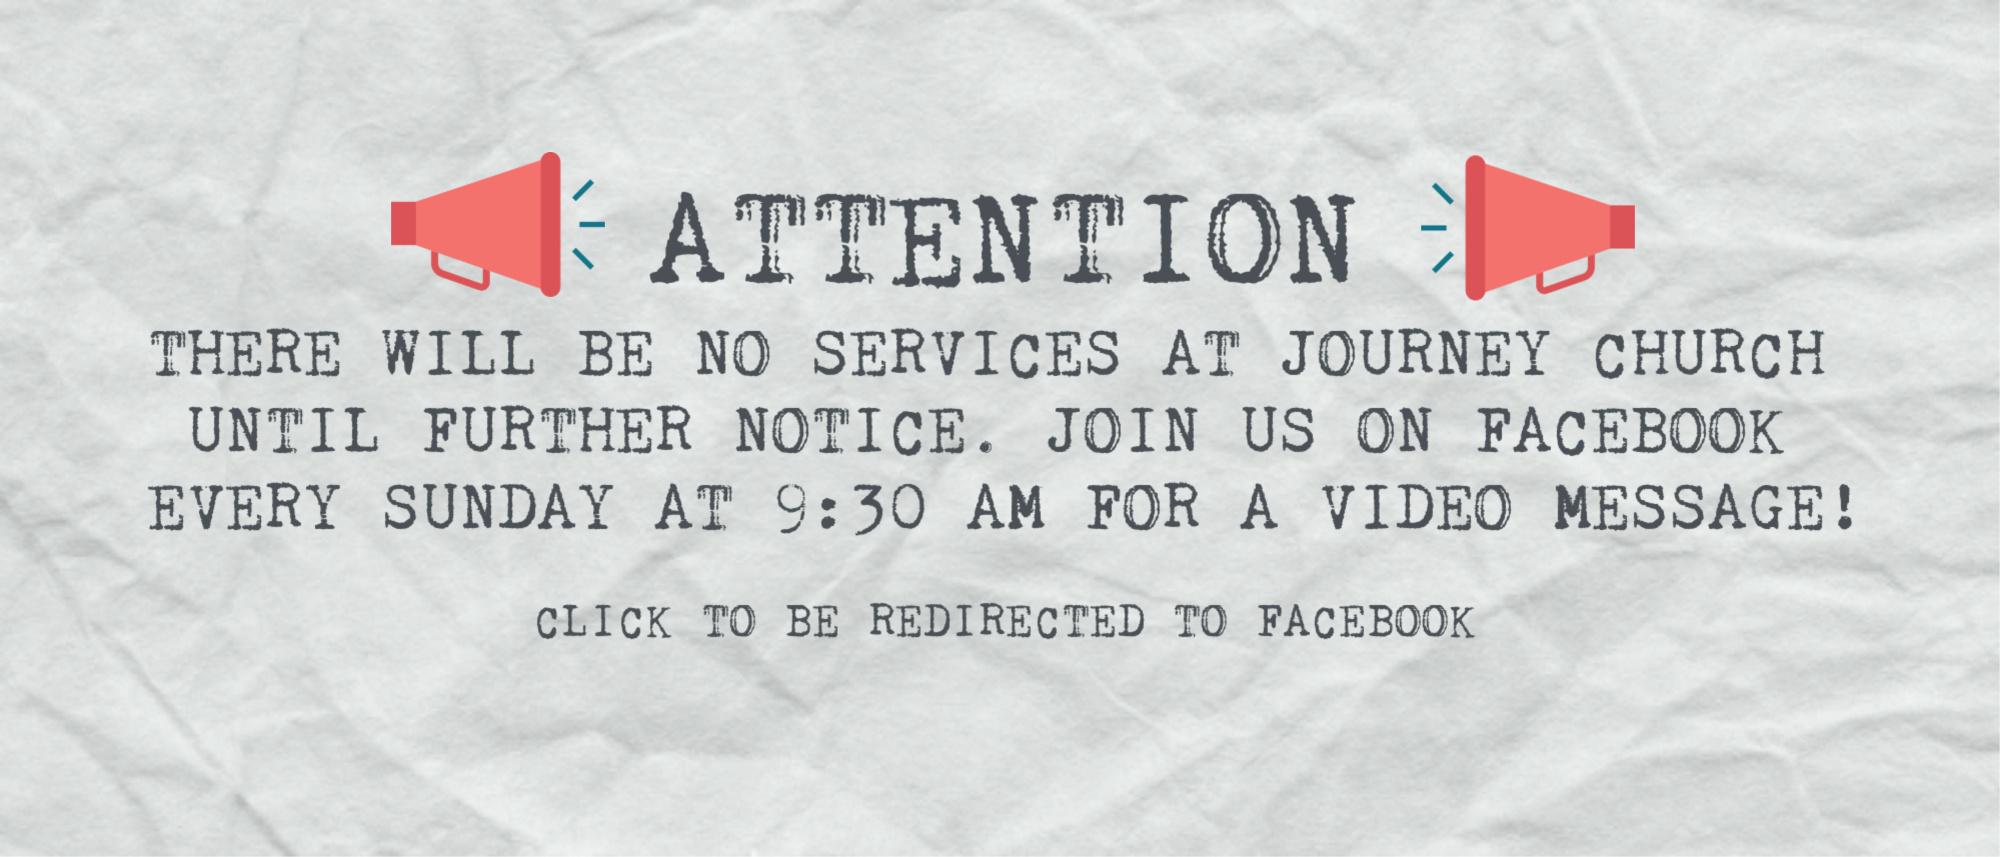 Services at Journey Church have been cancelled. Join us every Sunday at 9:30 AM on Facebook for video messages!